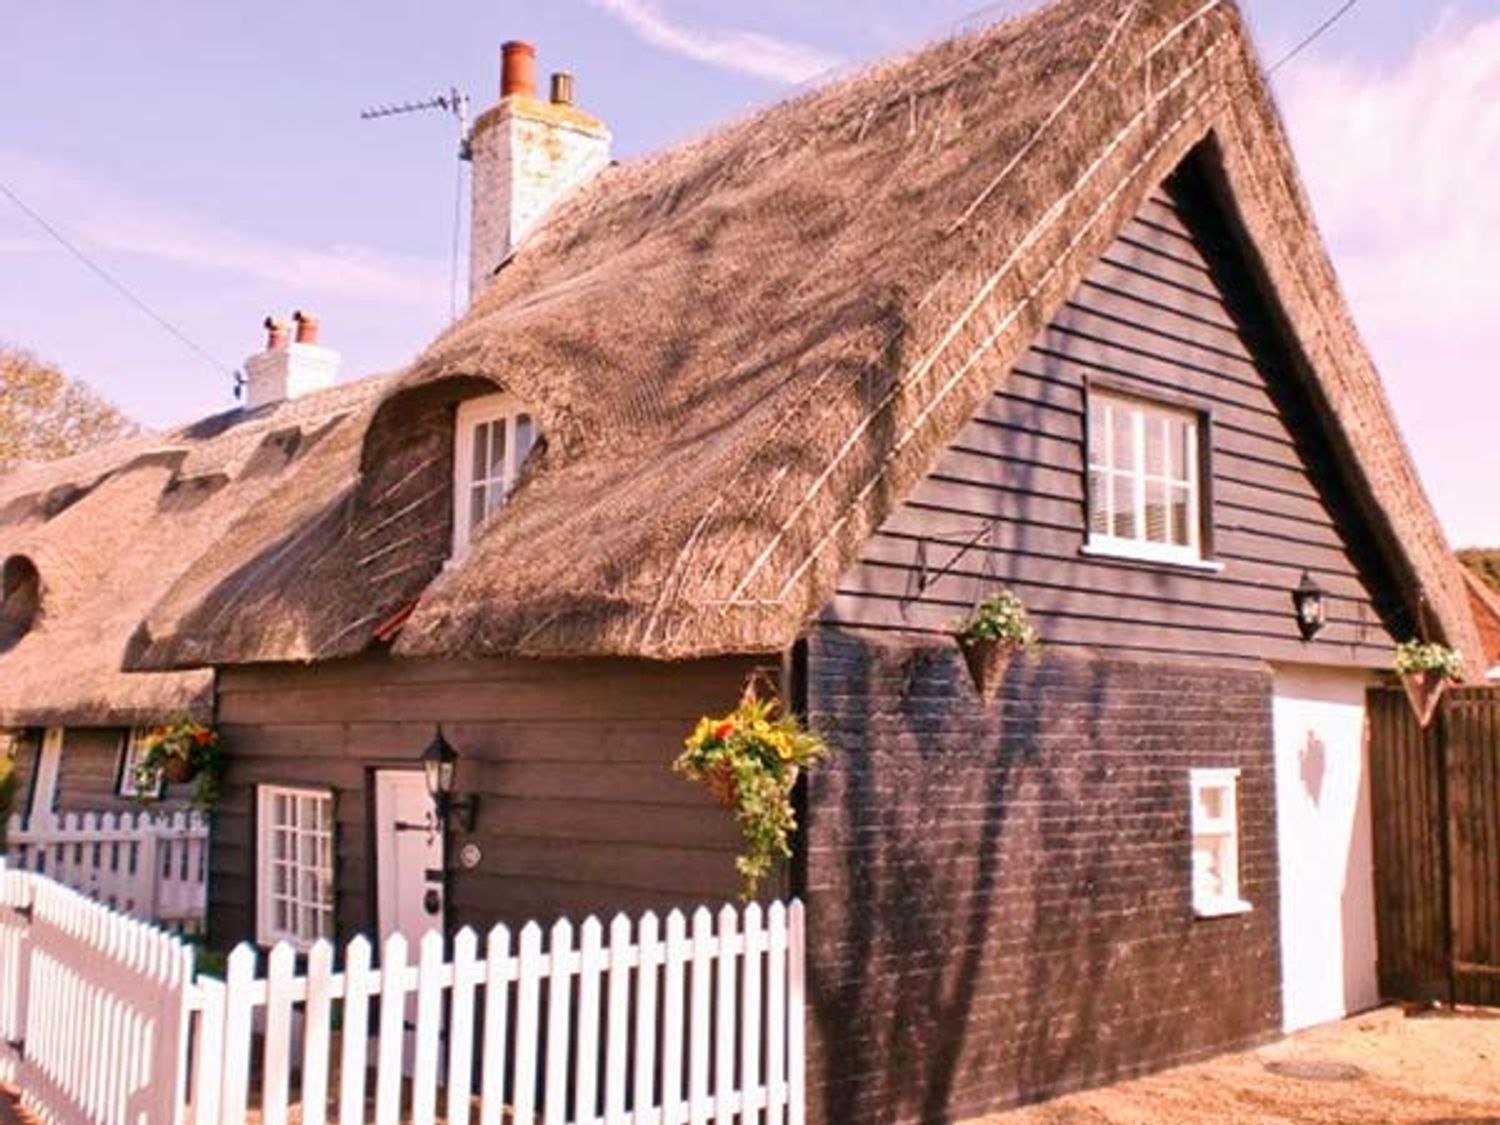 Holiday Cottages in Suffolk: Little Thatch, Walton-on-the-Naze | sykescottages.com